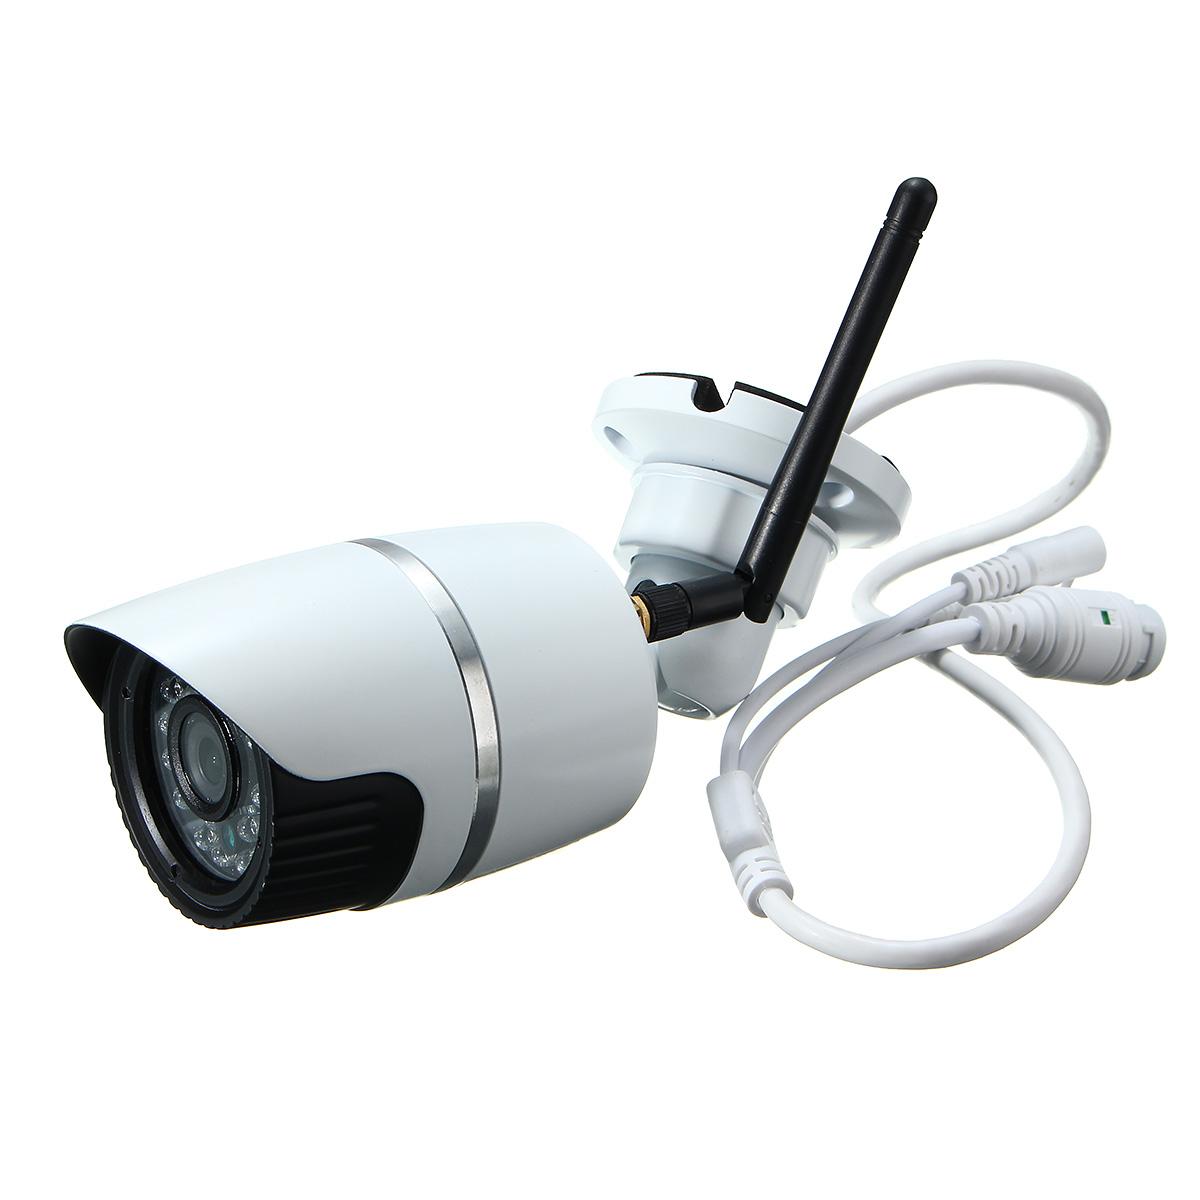 Safurance Outdoor Wireless WiFi 720P HD IP Network CCTV Home Security Camera IR Night Vision Surveillance Safety<br>